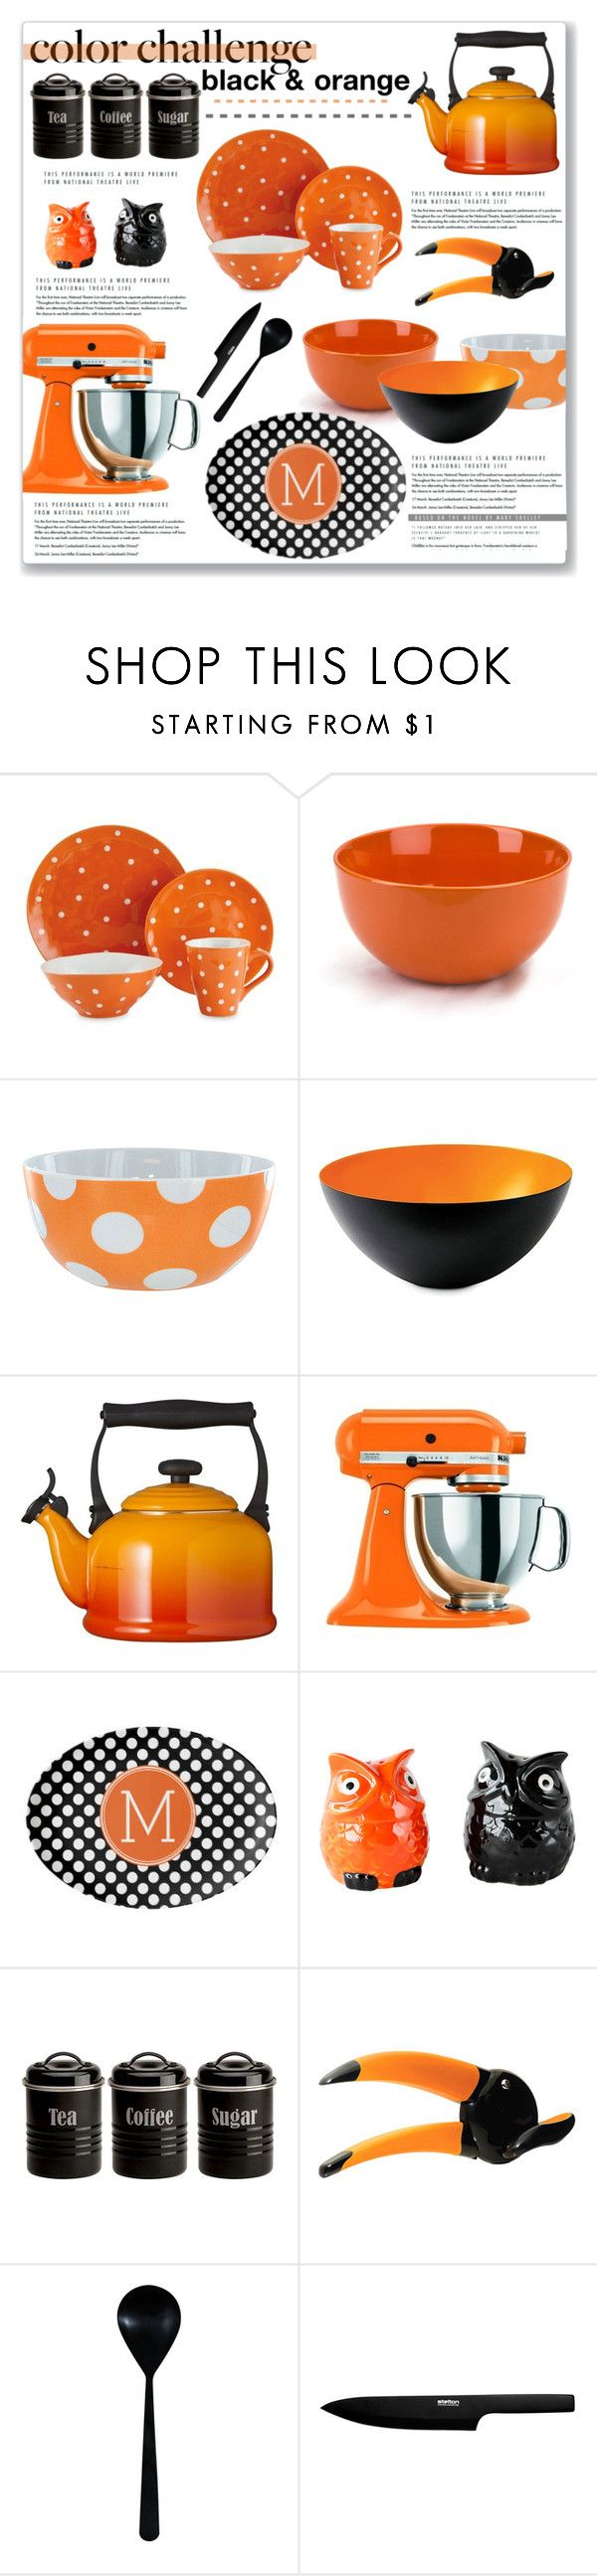 """""""Black & Orange Kitchen Accessories"""" by kellylynne68 ❤ liked on Polyvore featuring interior, interiors, interior design, home, home decor, interior decorating, Le Creuset, KitchenAid, Dot & Bo and Typhoon"""